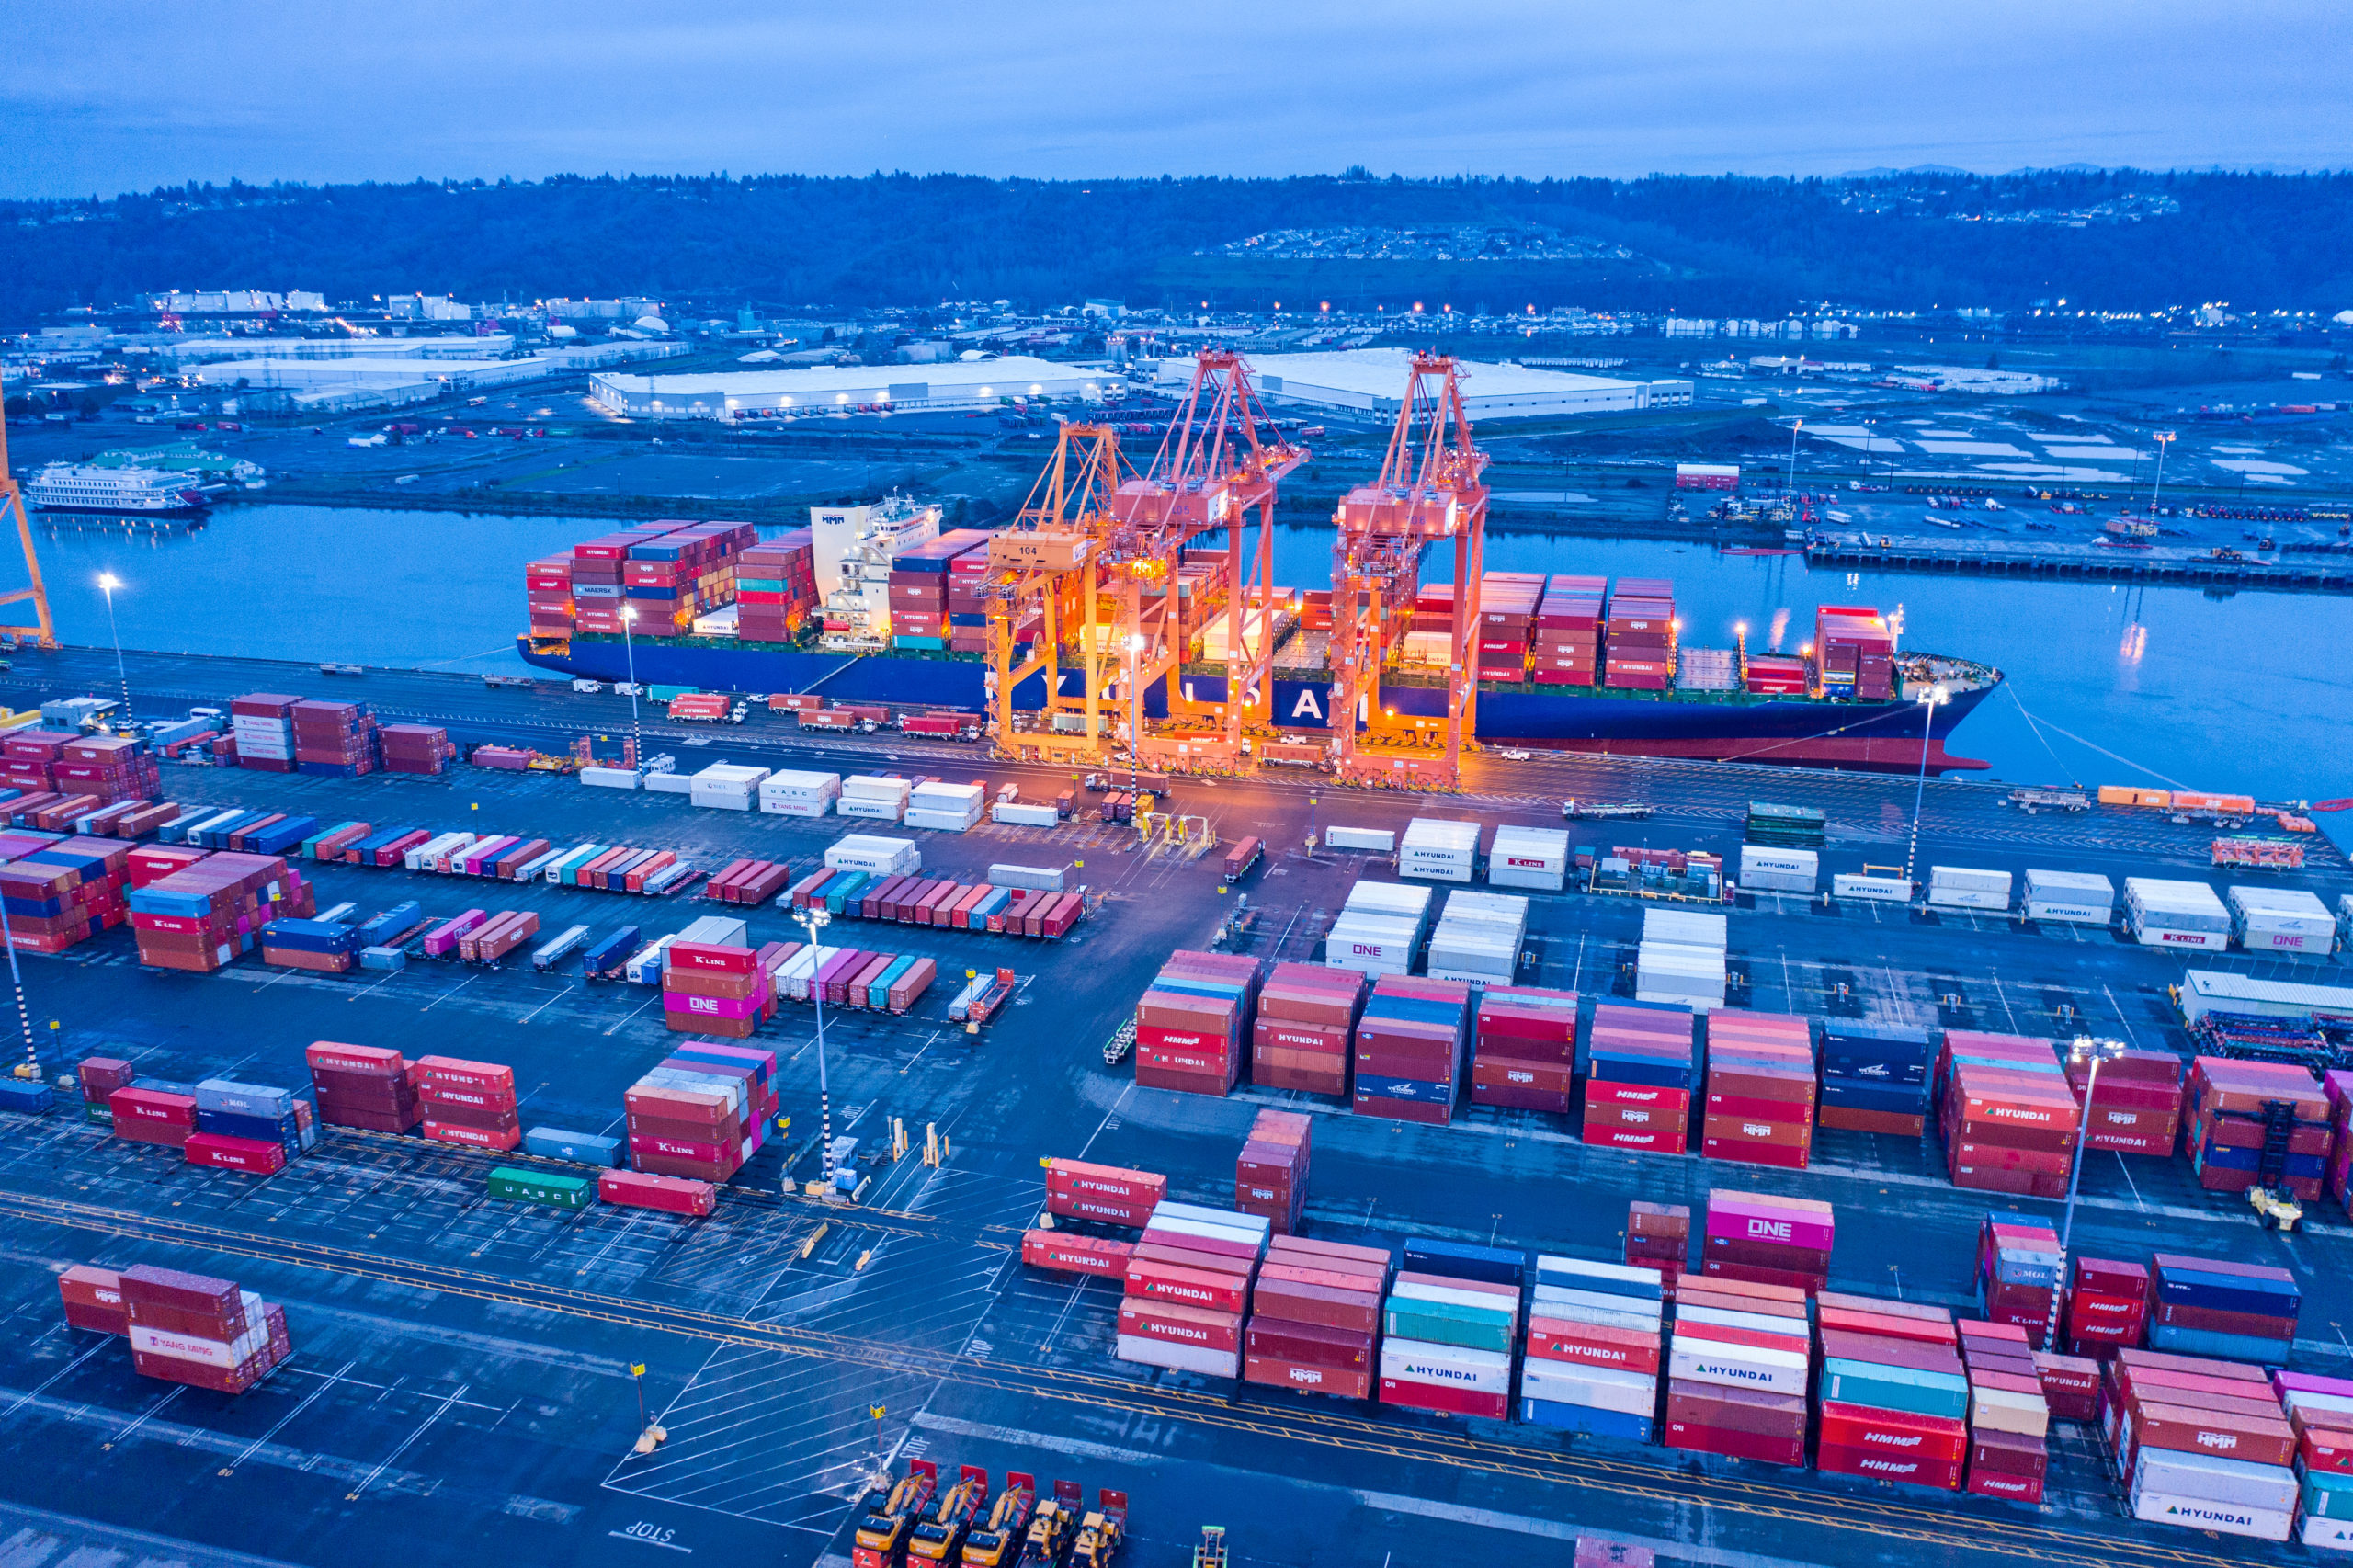 Tacoma, United States - December 28, 2019: Ship being loaded at the Port of Tacoma in the Pacific Northwest Washington.